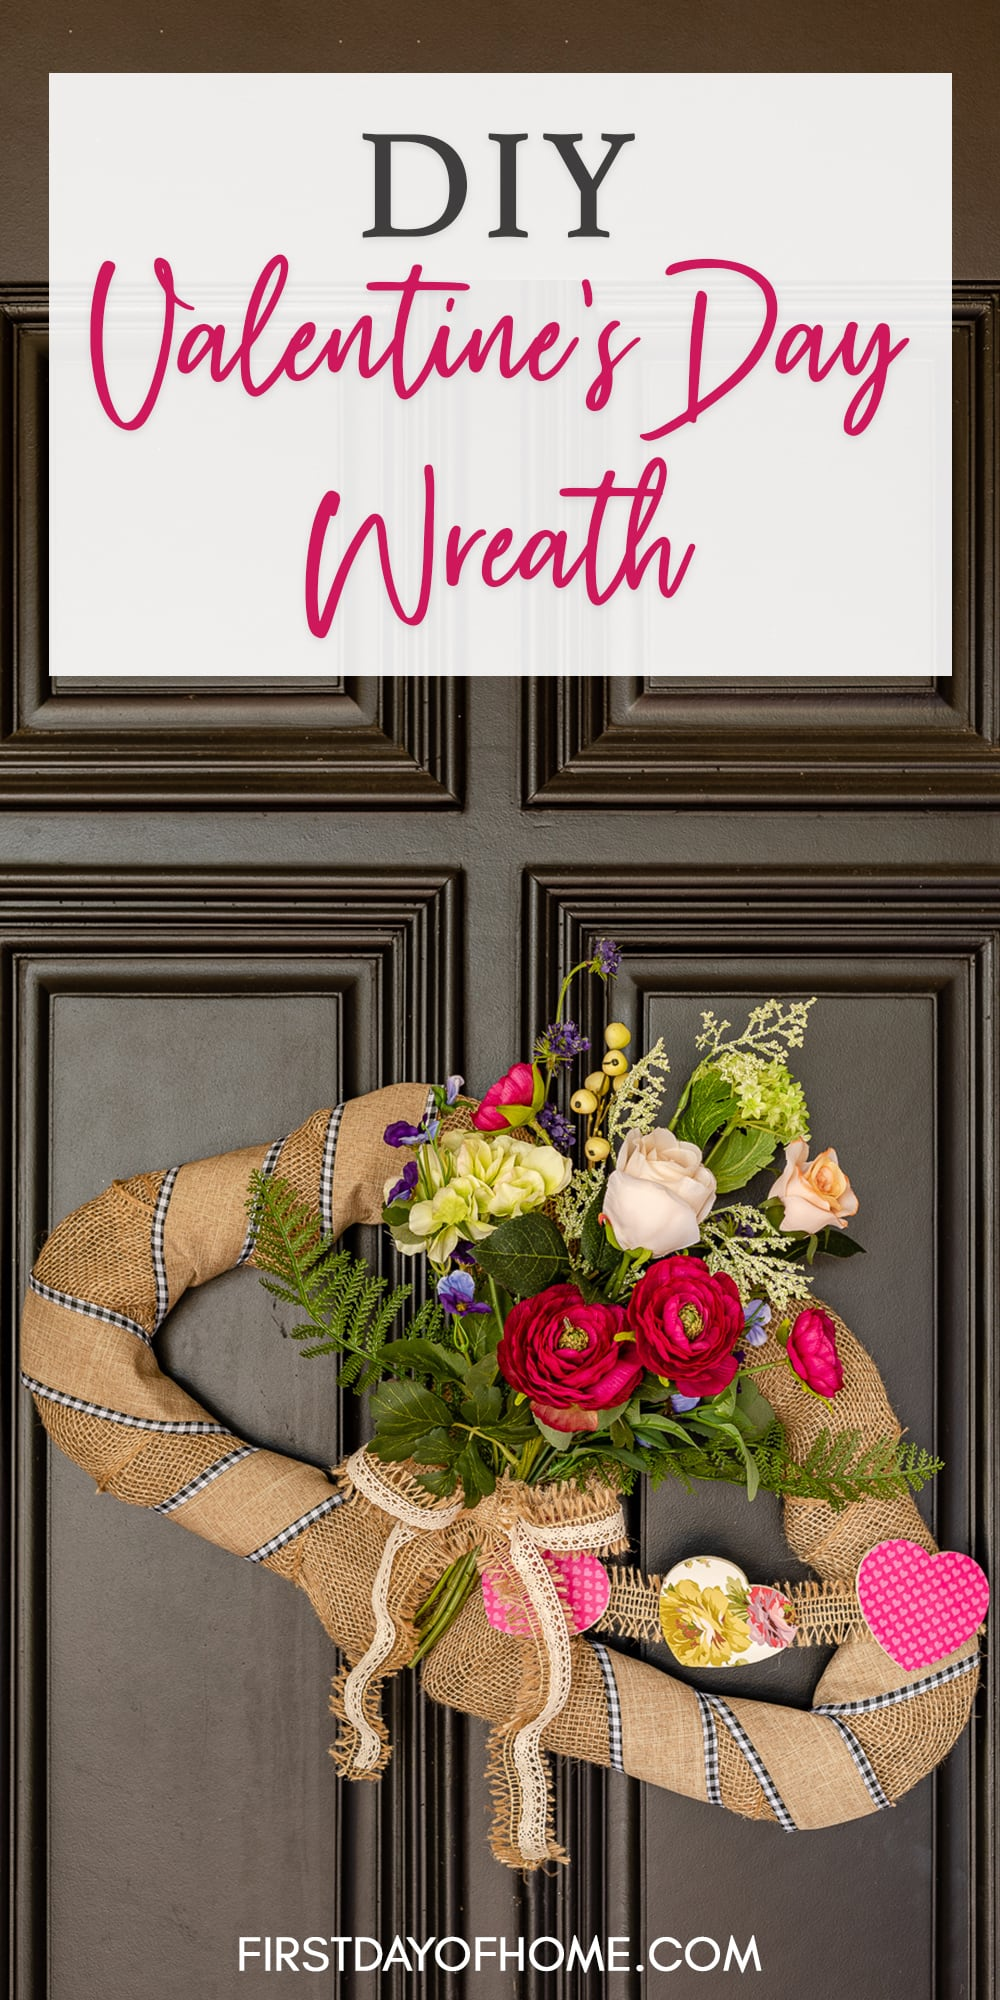 "Double heart wreath with flowers and decoupage hearts on black front door with text overlay reading ""DIY Valentine's Day Wreath"""